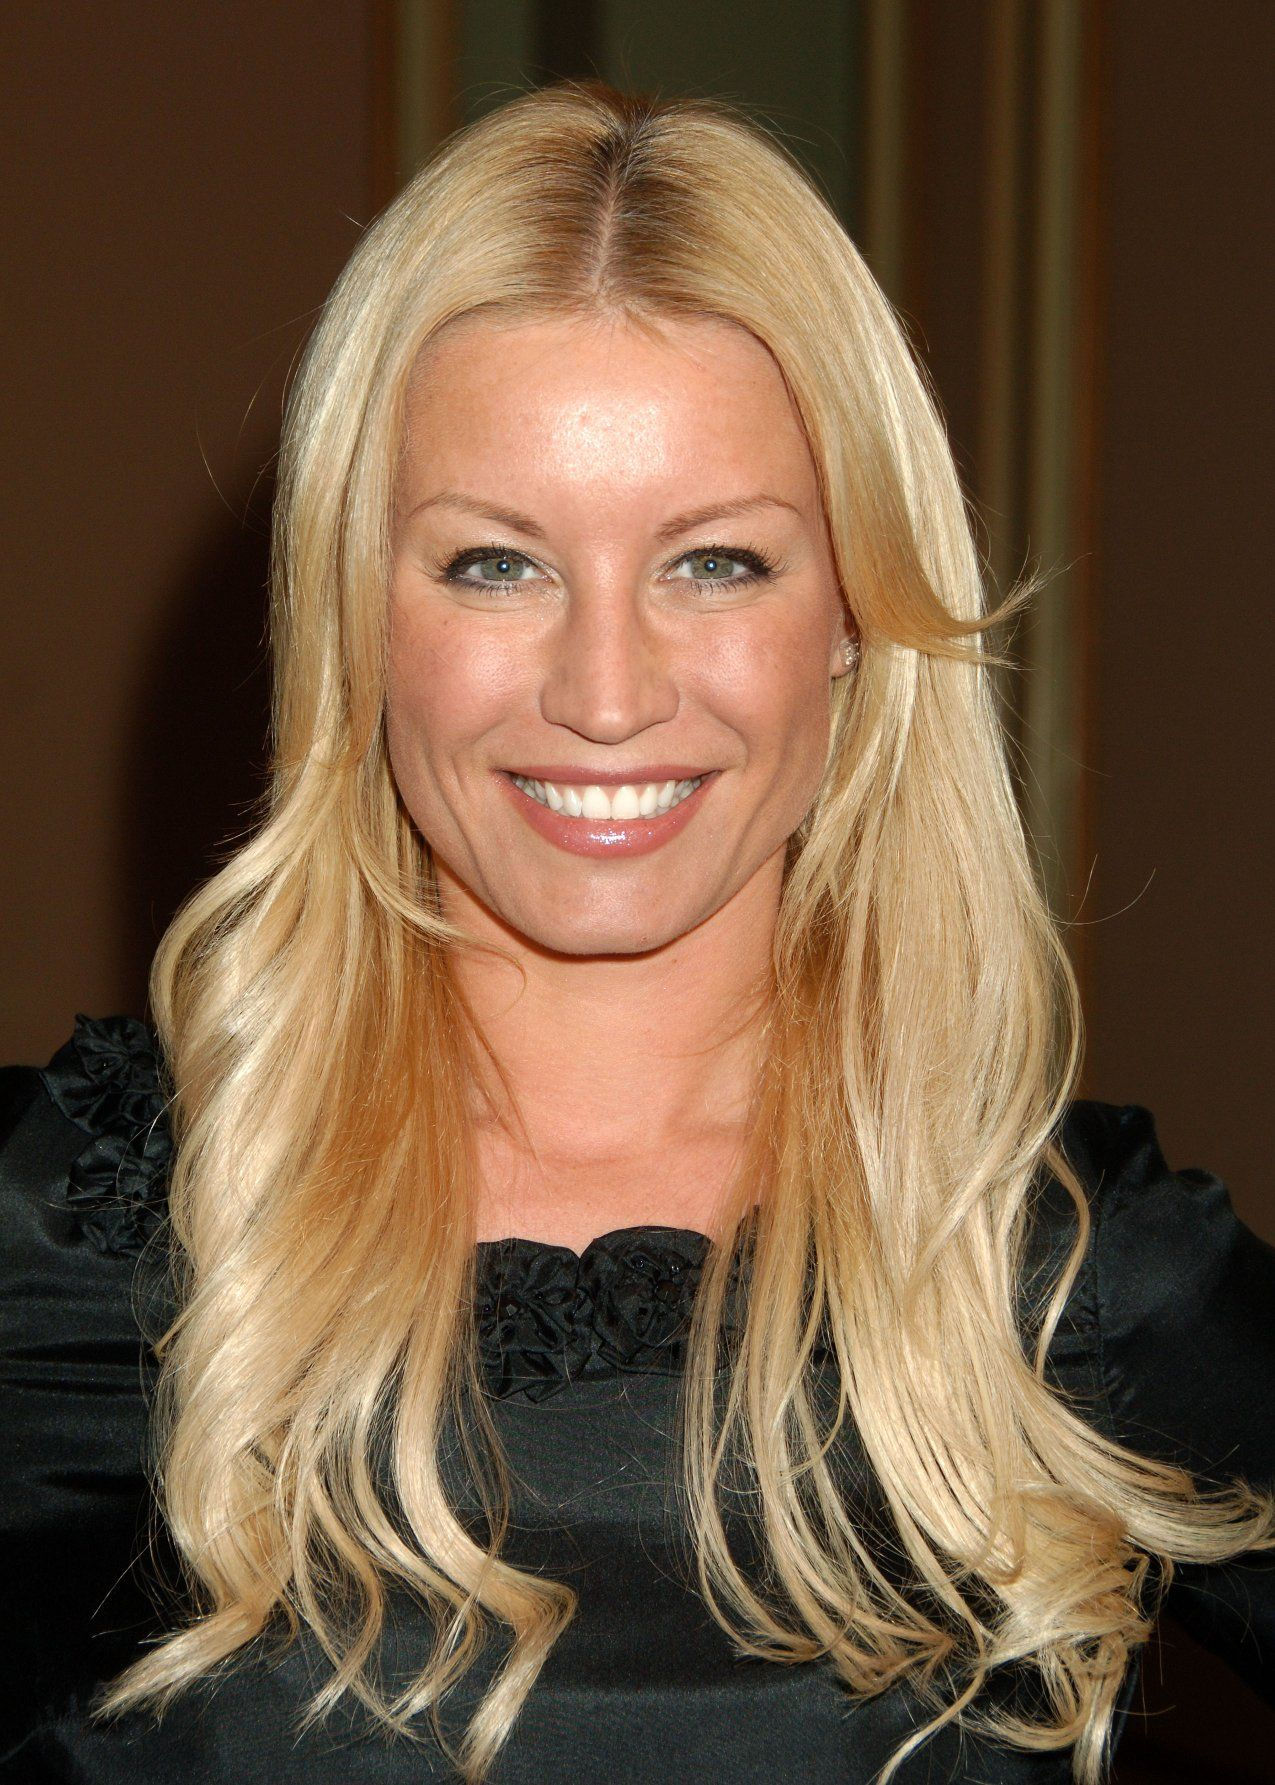 denise van outen gary glitterdenise van outen age, denise van outen betsy, denise van outen instagram, denise van outen jay kay, denise van outen tattoo, denise van outen charleston, denise van outen lee mead, denise van outen eastenders, denise van outen twitter, denise van outen hot, denise van outen boyfriend, denise van outen daughter, denise van outen partner, denise van outen net worth, denise van outen big breakfast, denise van outen gary glitter